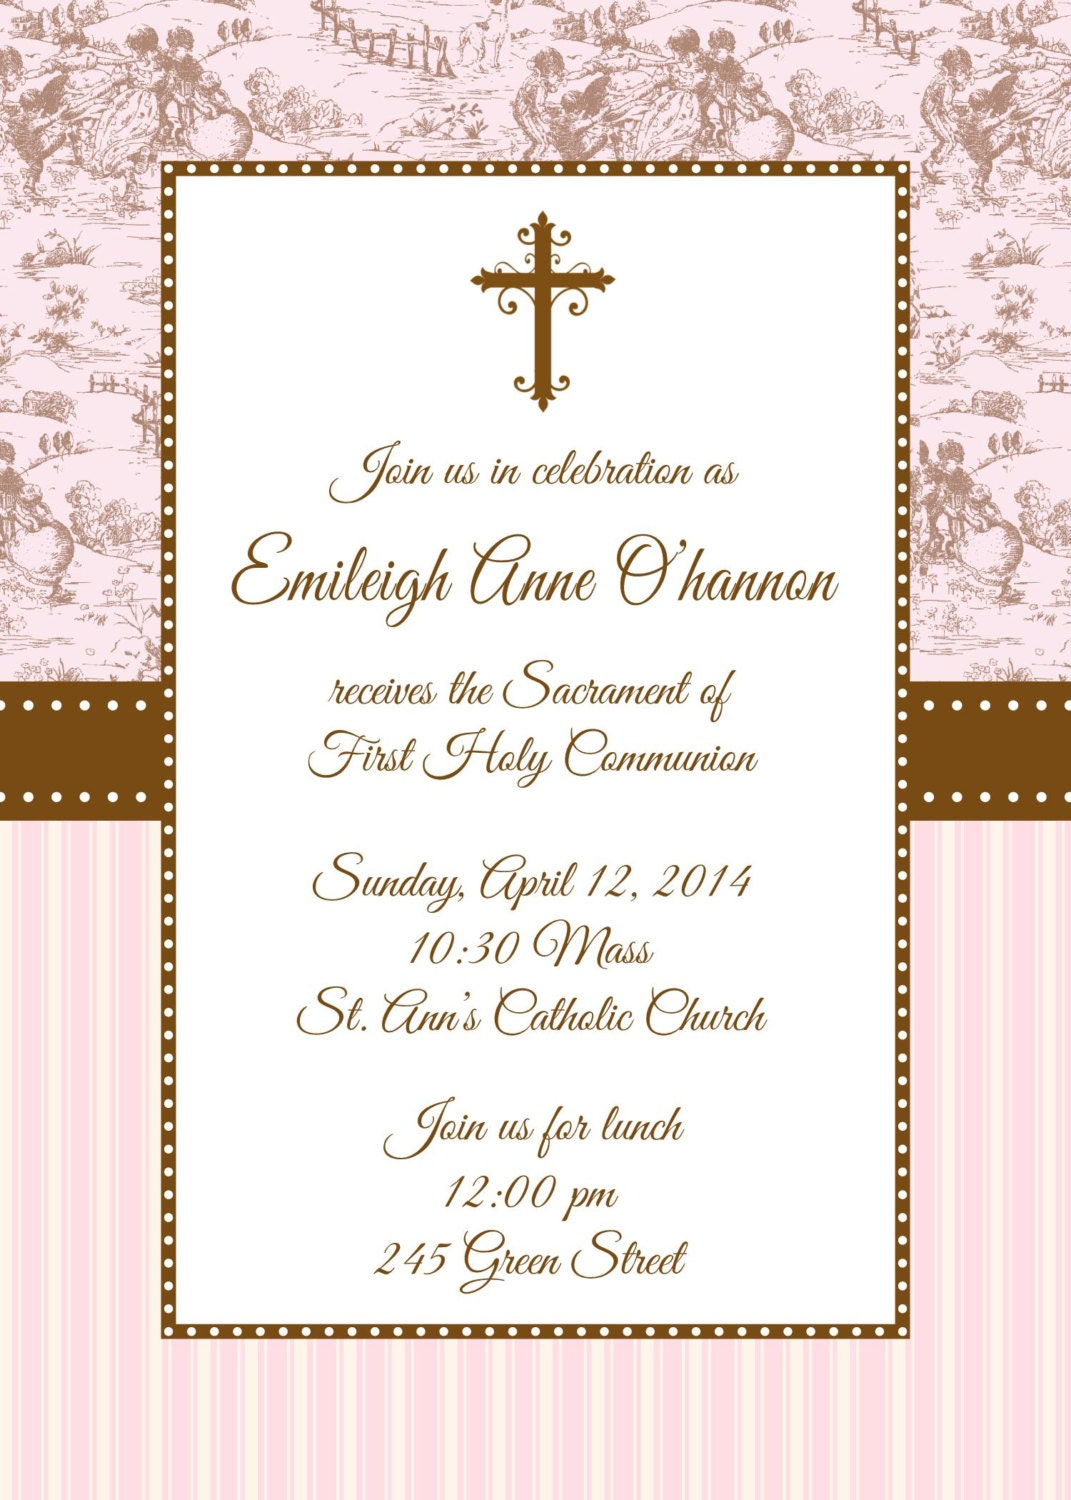 First Holy Communion Invitation First Communion Invitation